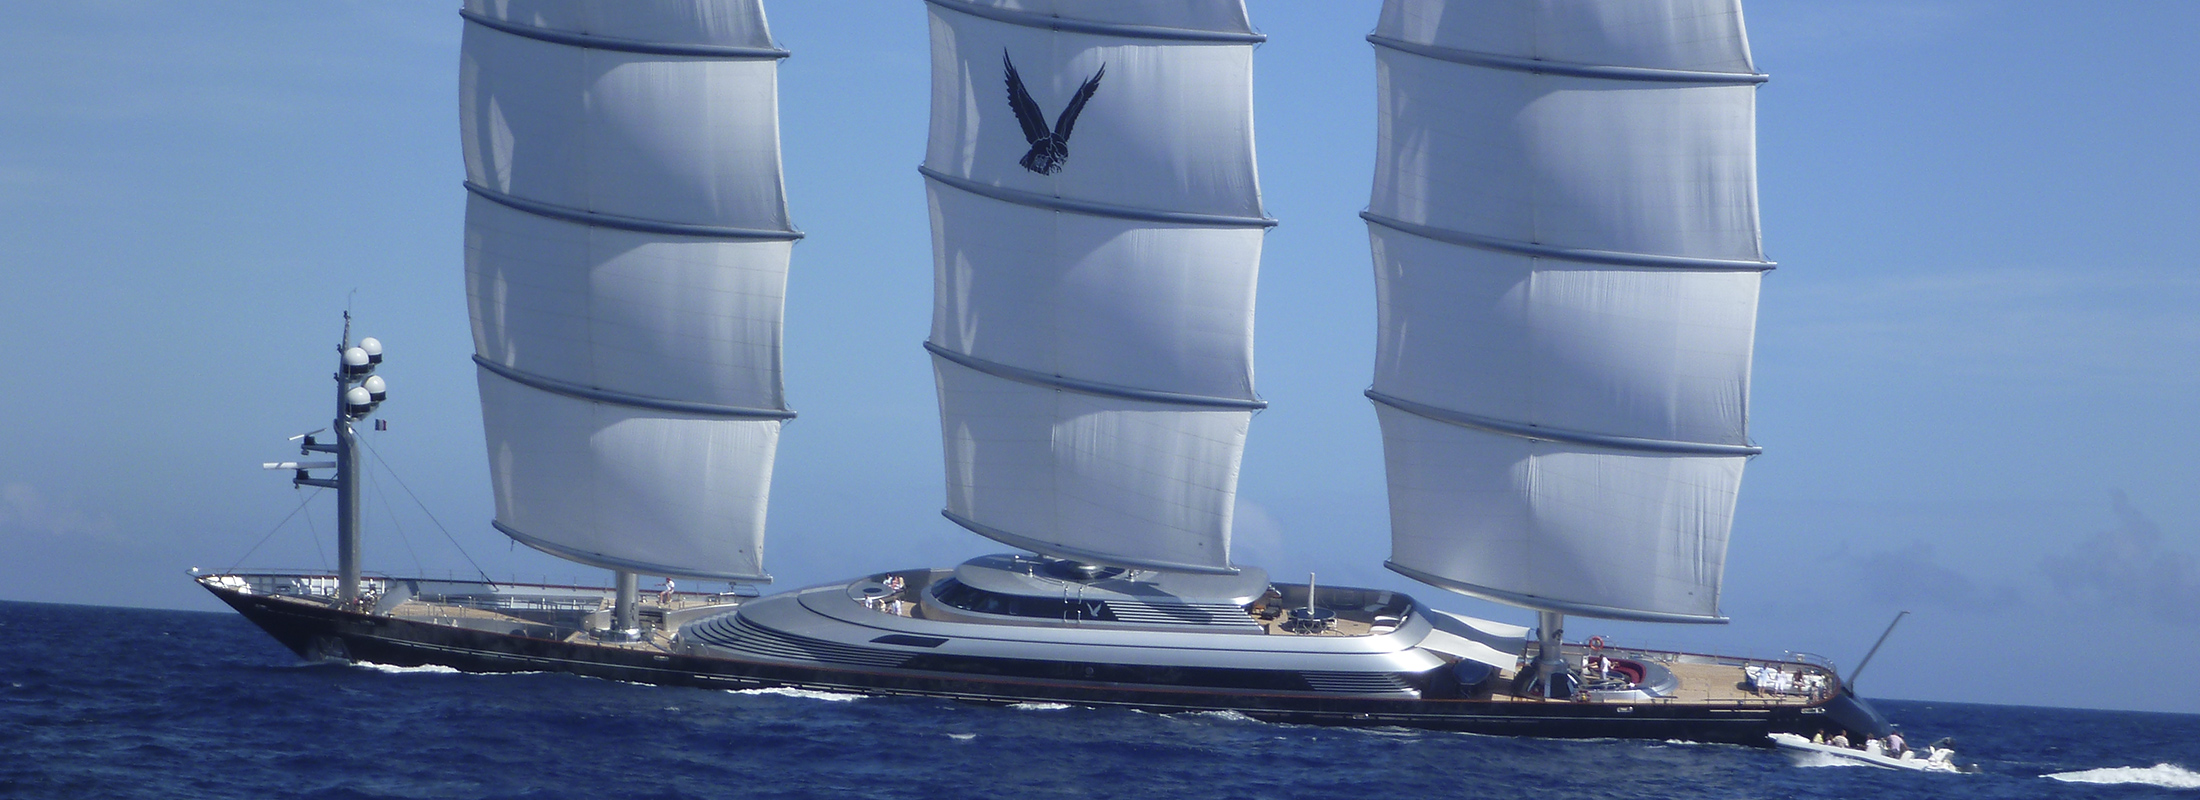 maltese falcon Maltese falcon is a 88m luxury sail mega yacht available for charter built in 2006, refitted in 2015 charter up to 12 guests in 6 cabins (1.